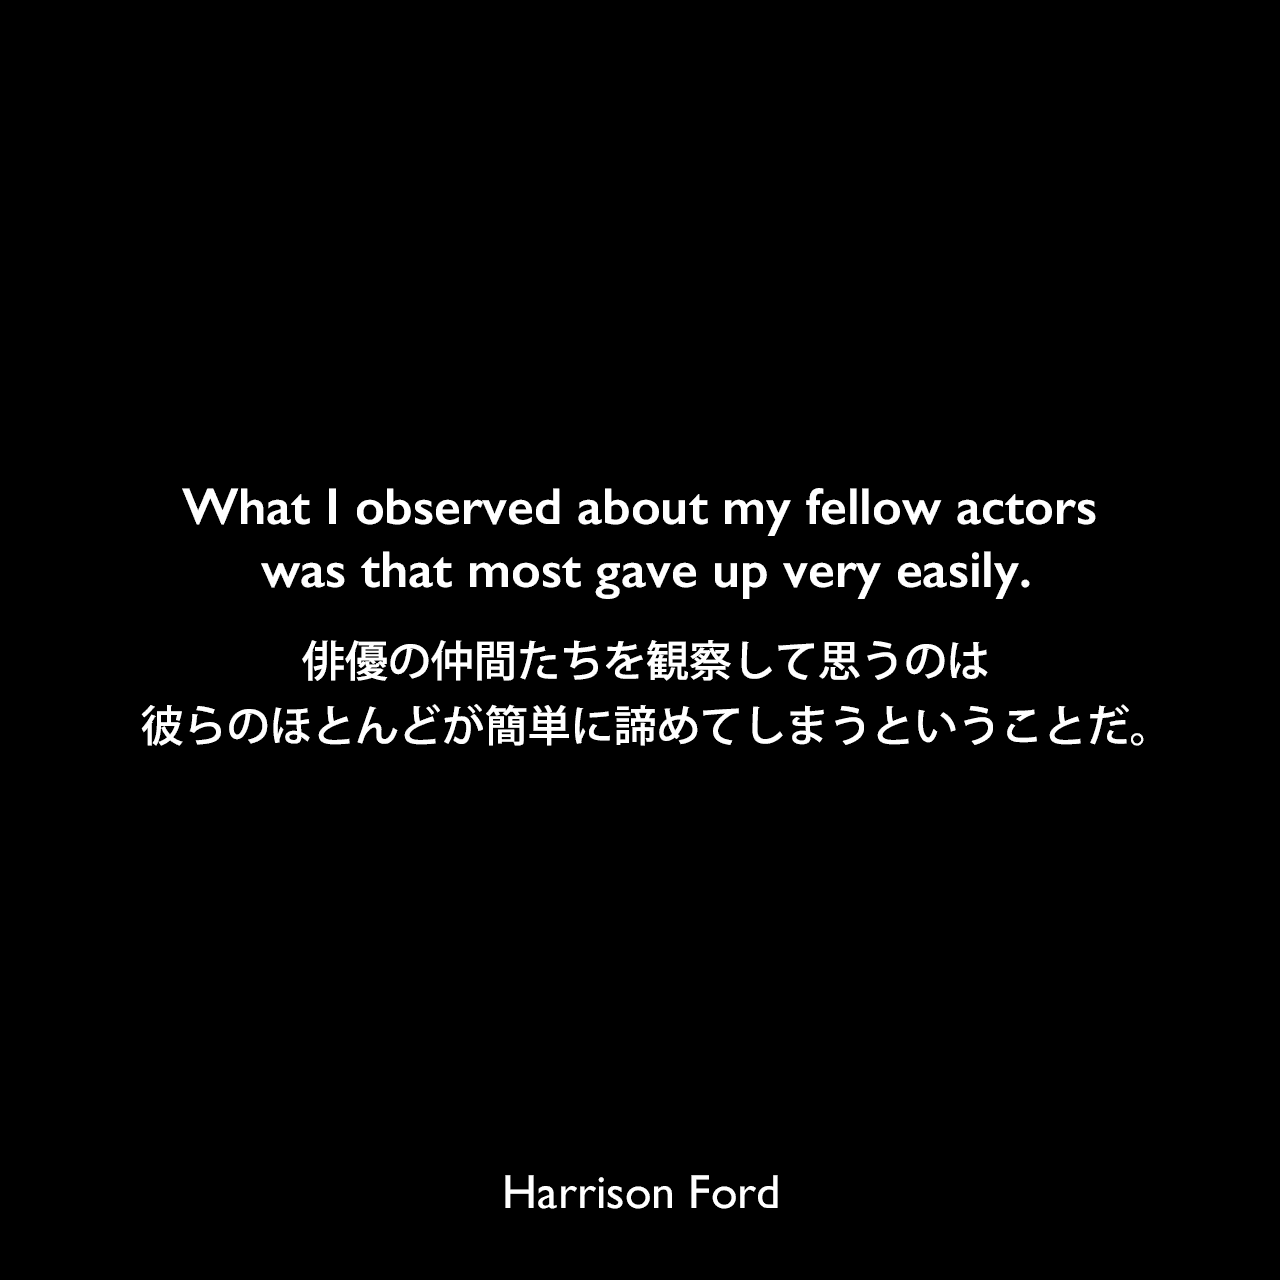 What I observed about my fellow actors was that most gave up very easily.俳優の仲間たちを観察して思うのは彼らのほとんどが簡単に諦めてしまうということだ。Harrison Ford